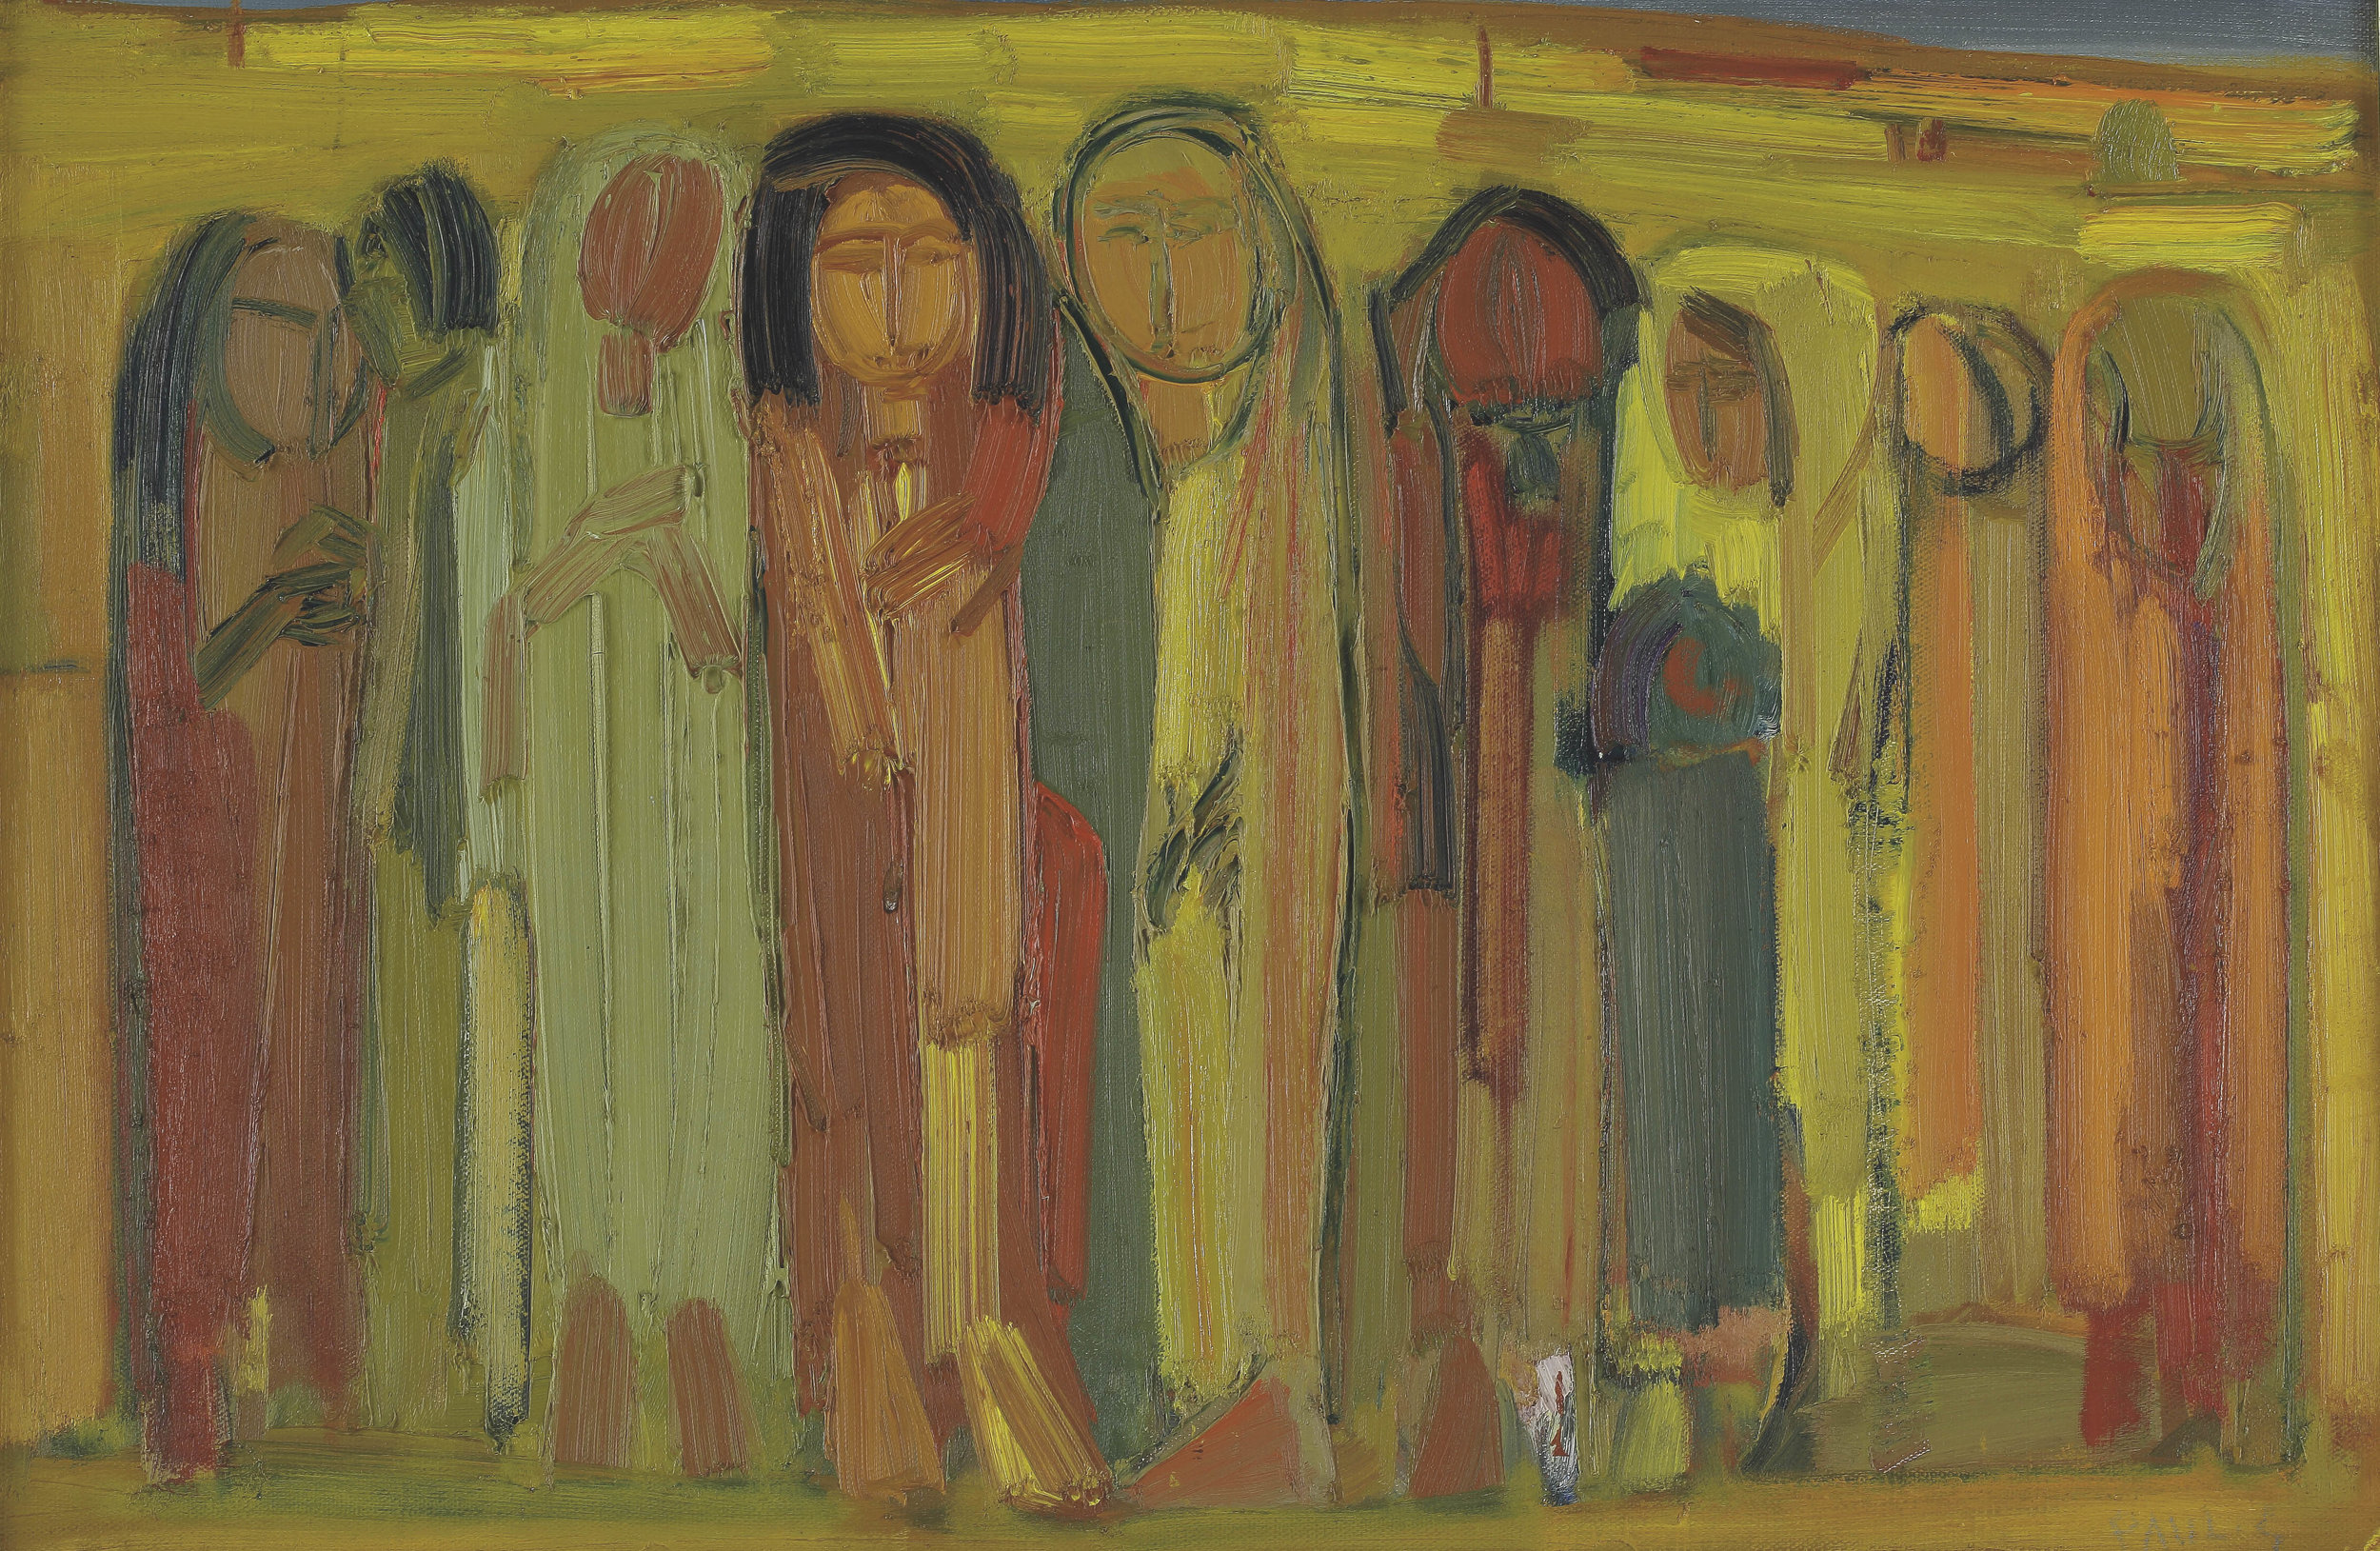 Paul Guiragossian. Figures (c.1965). Oil on canvas.60 x 90 cm. From the collection of Fadi Moussalli. Courtesy of Barjeel Art Foundation.